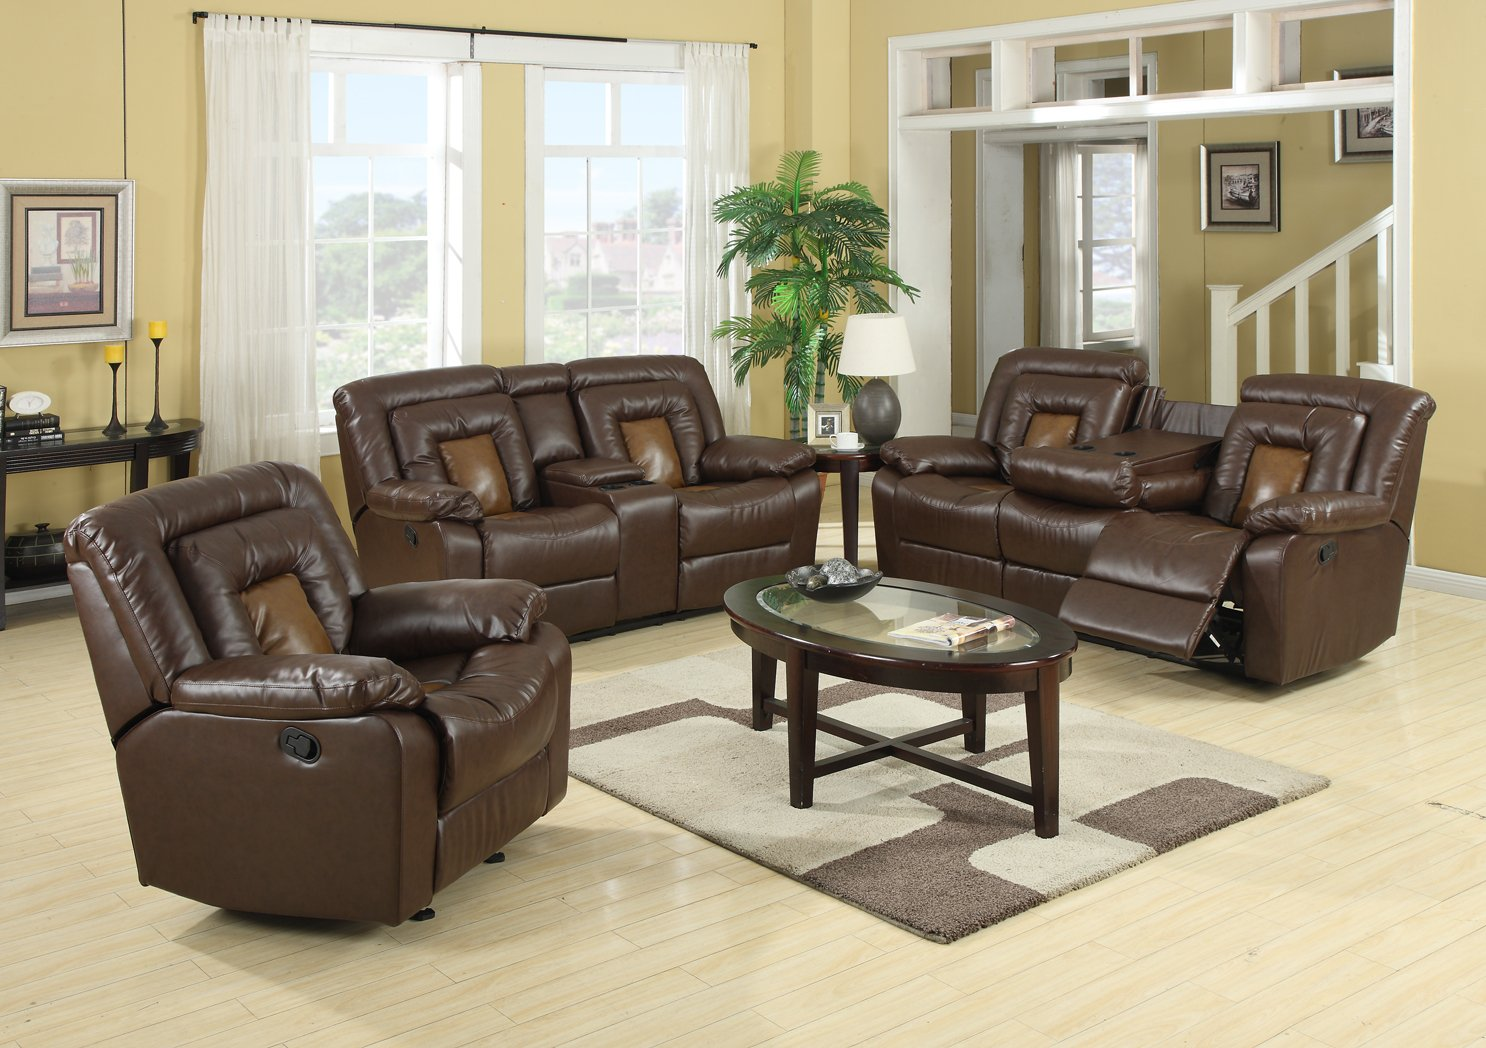 amazon com roundhill furniture kmax 2 toned dual reclining sofa and